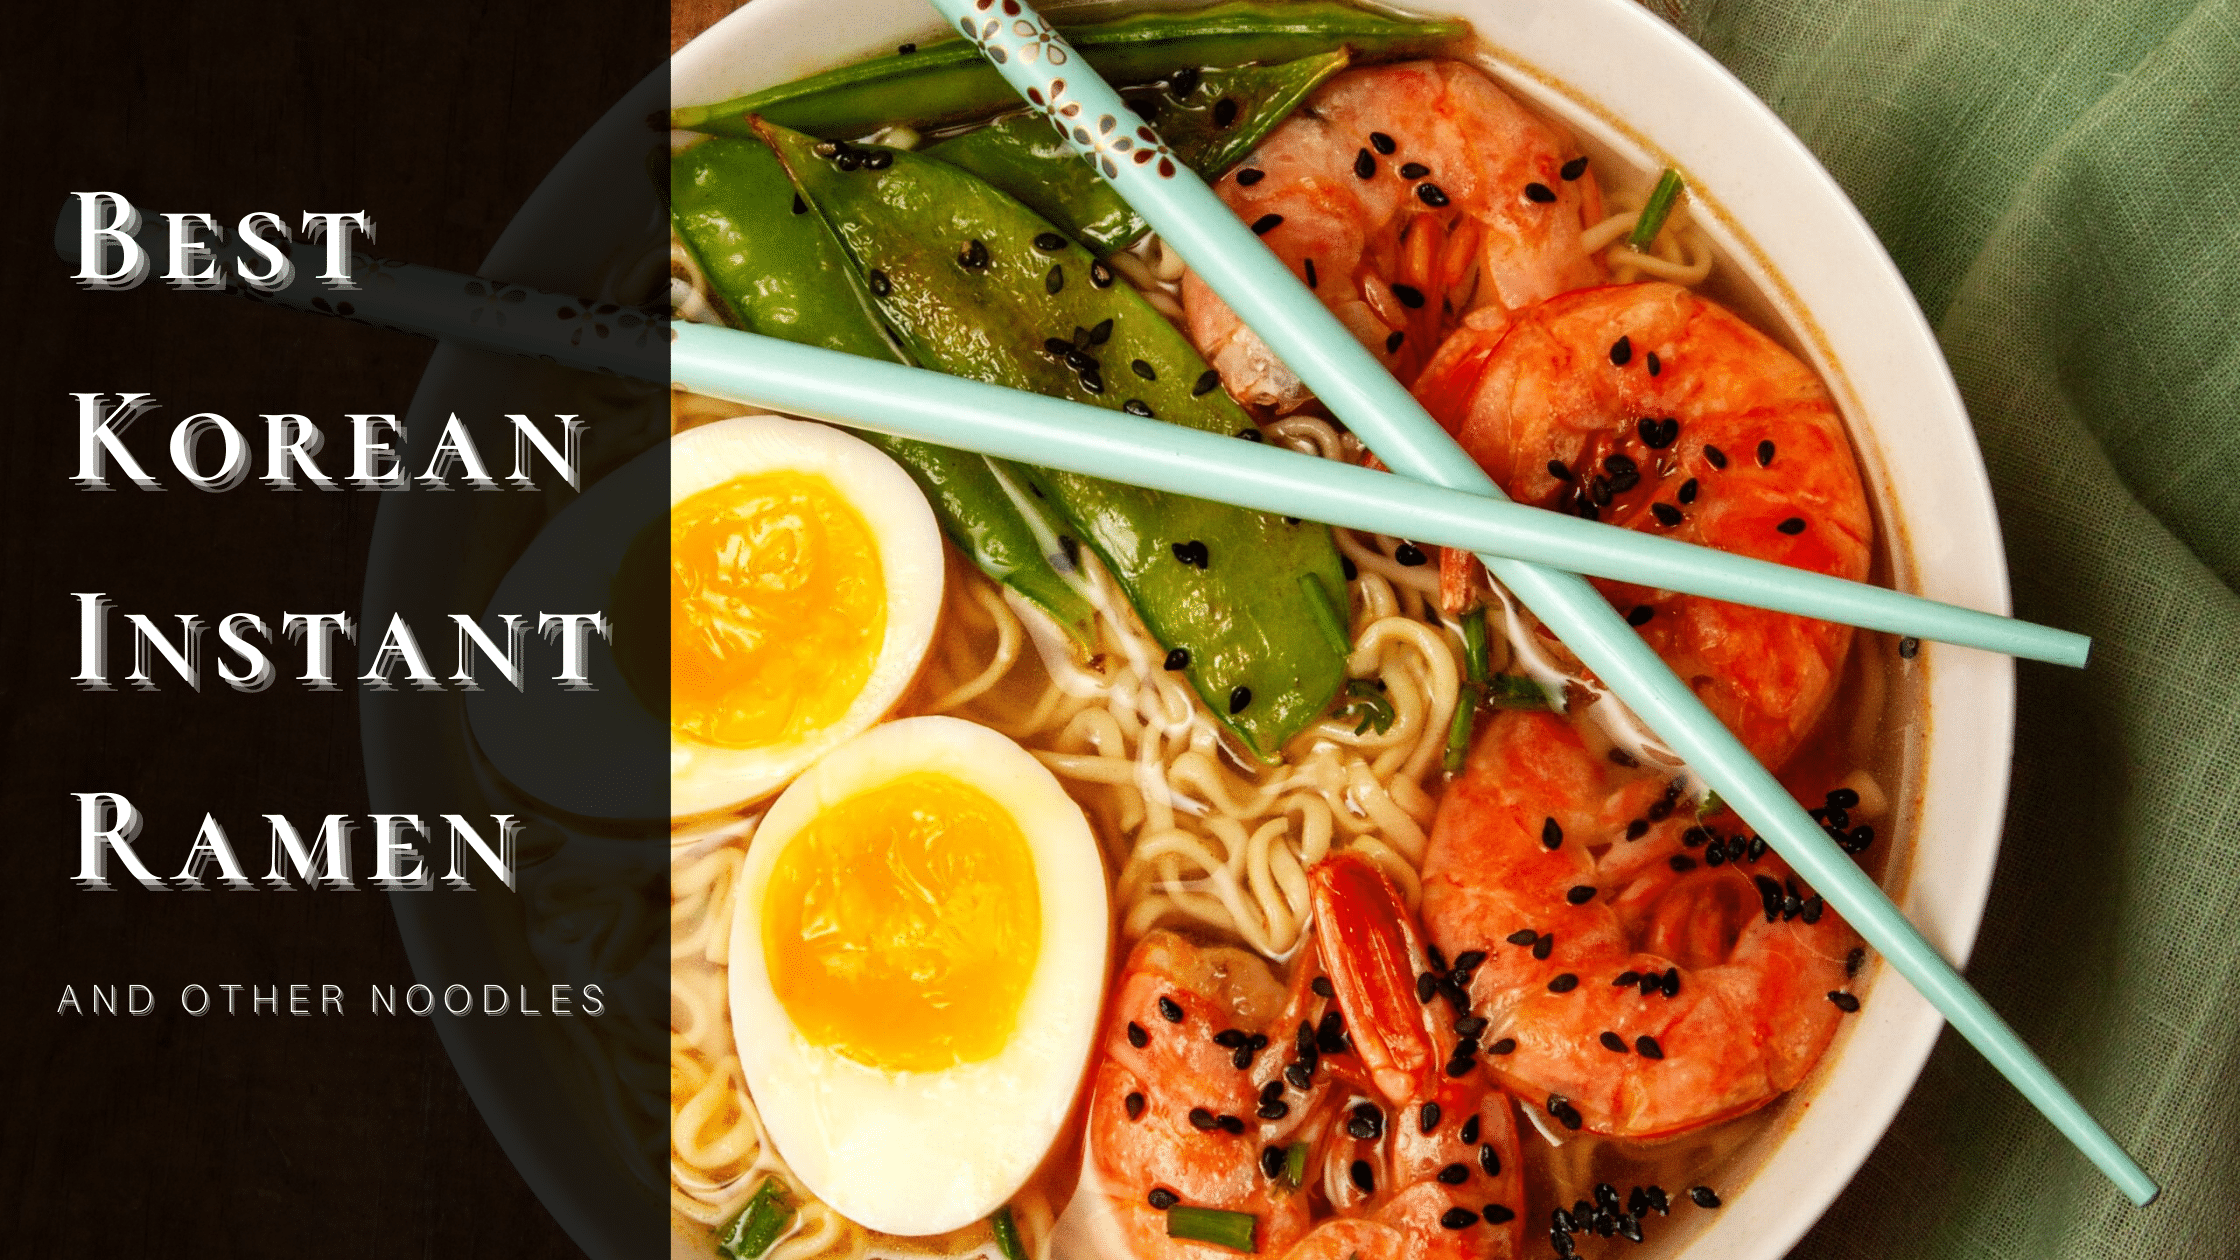 best korean instant ramen and noodles